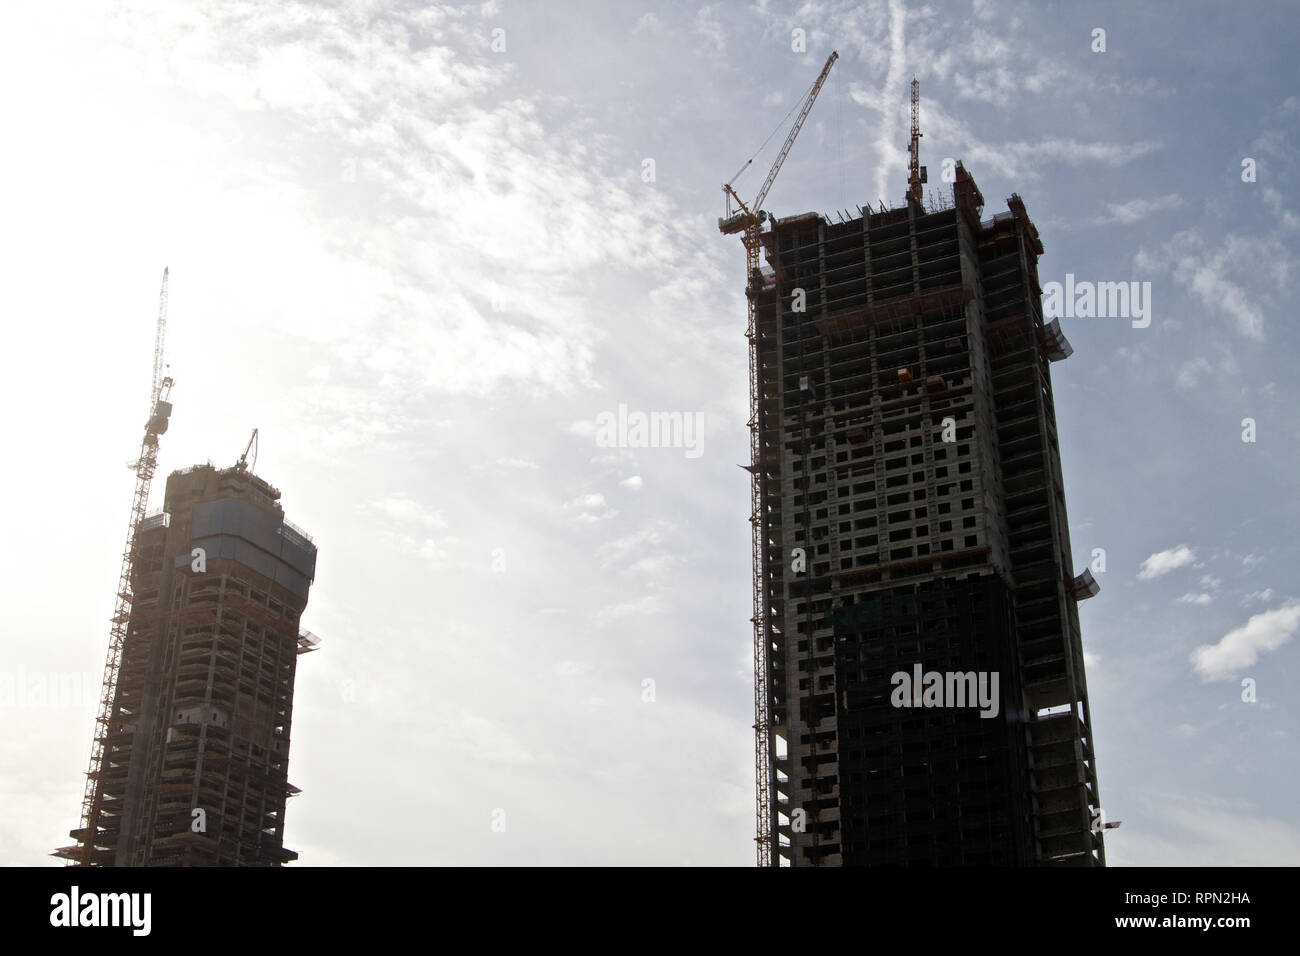 Dubai-Arki Group Design LLC building on the right and Al Hikma Tower on the left under construction - Stock Image